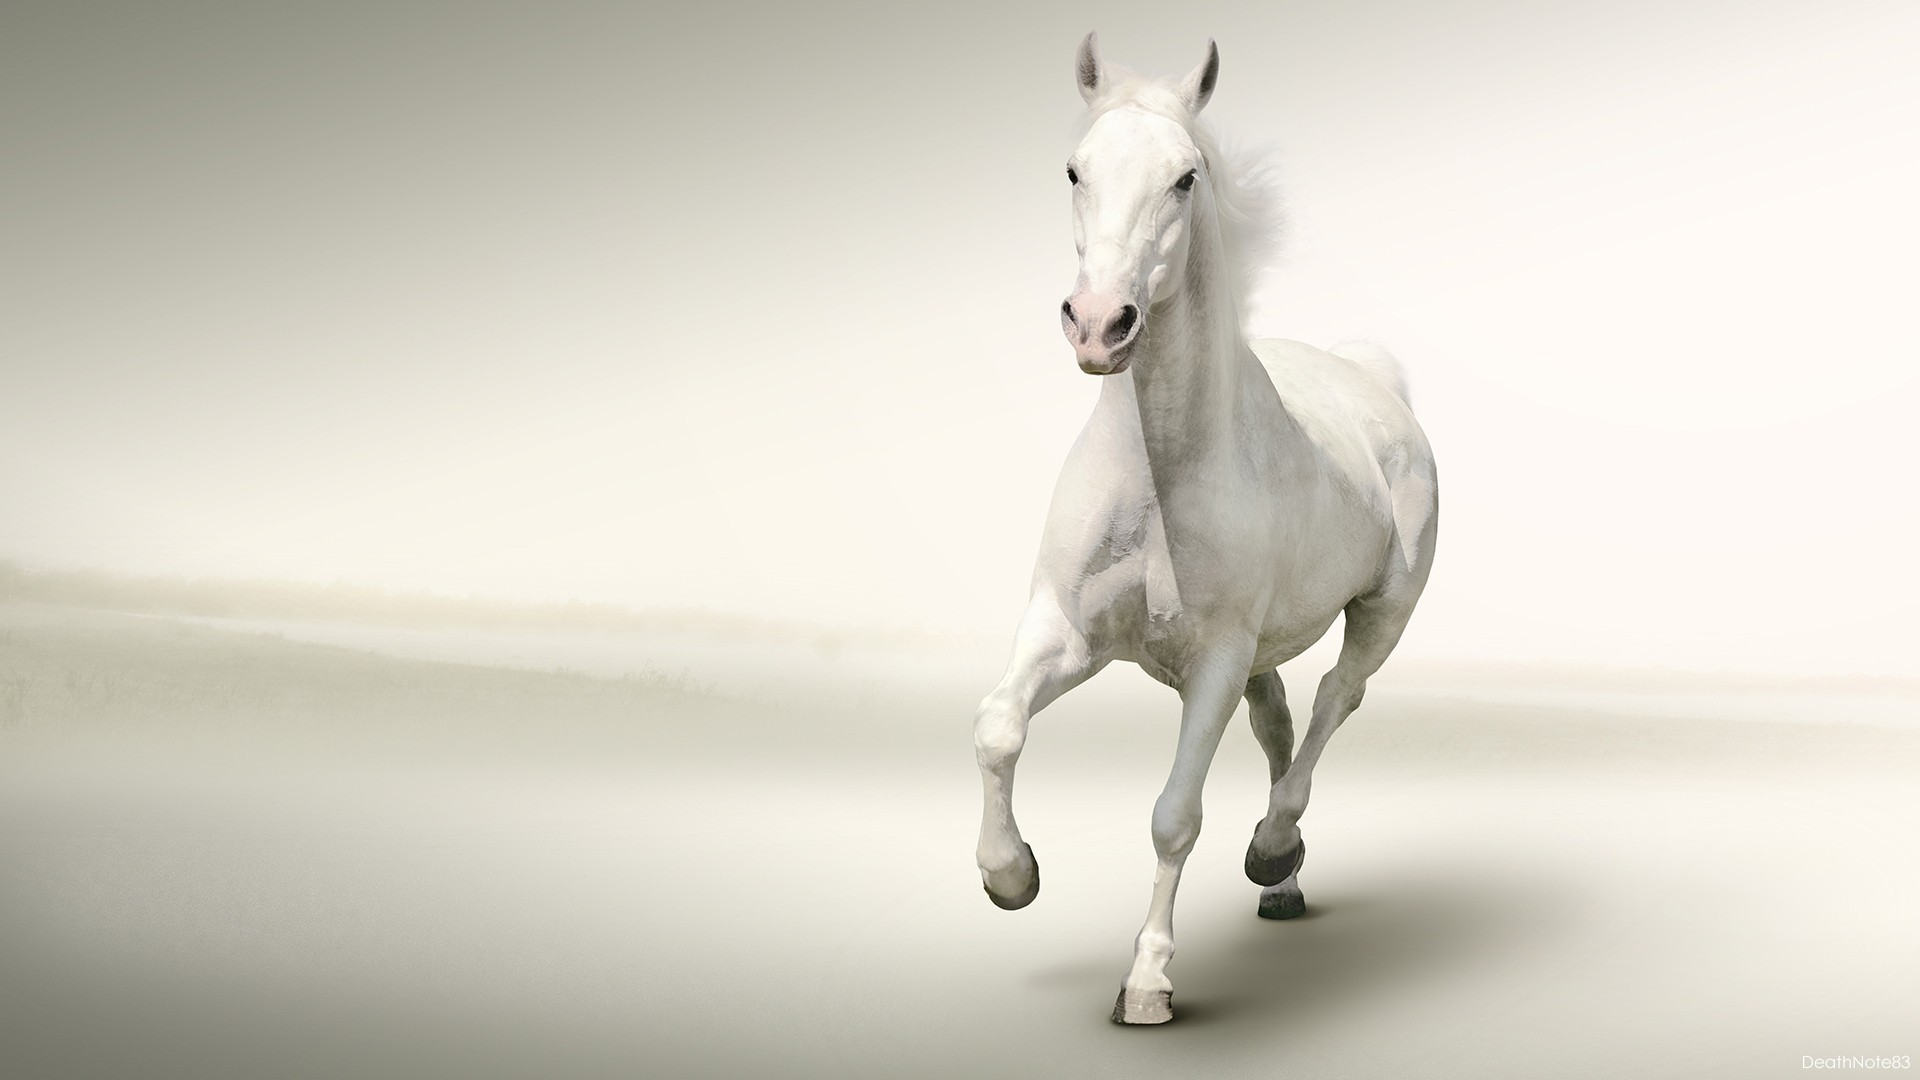 Free Download Running White Horse Hd Wallpaper 1920x1080 For Your Desktop Mobile Tablet Explore 44 Horse With White Background White Horse Wallpaper Black And White Horse Wallpaper